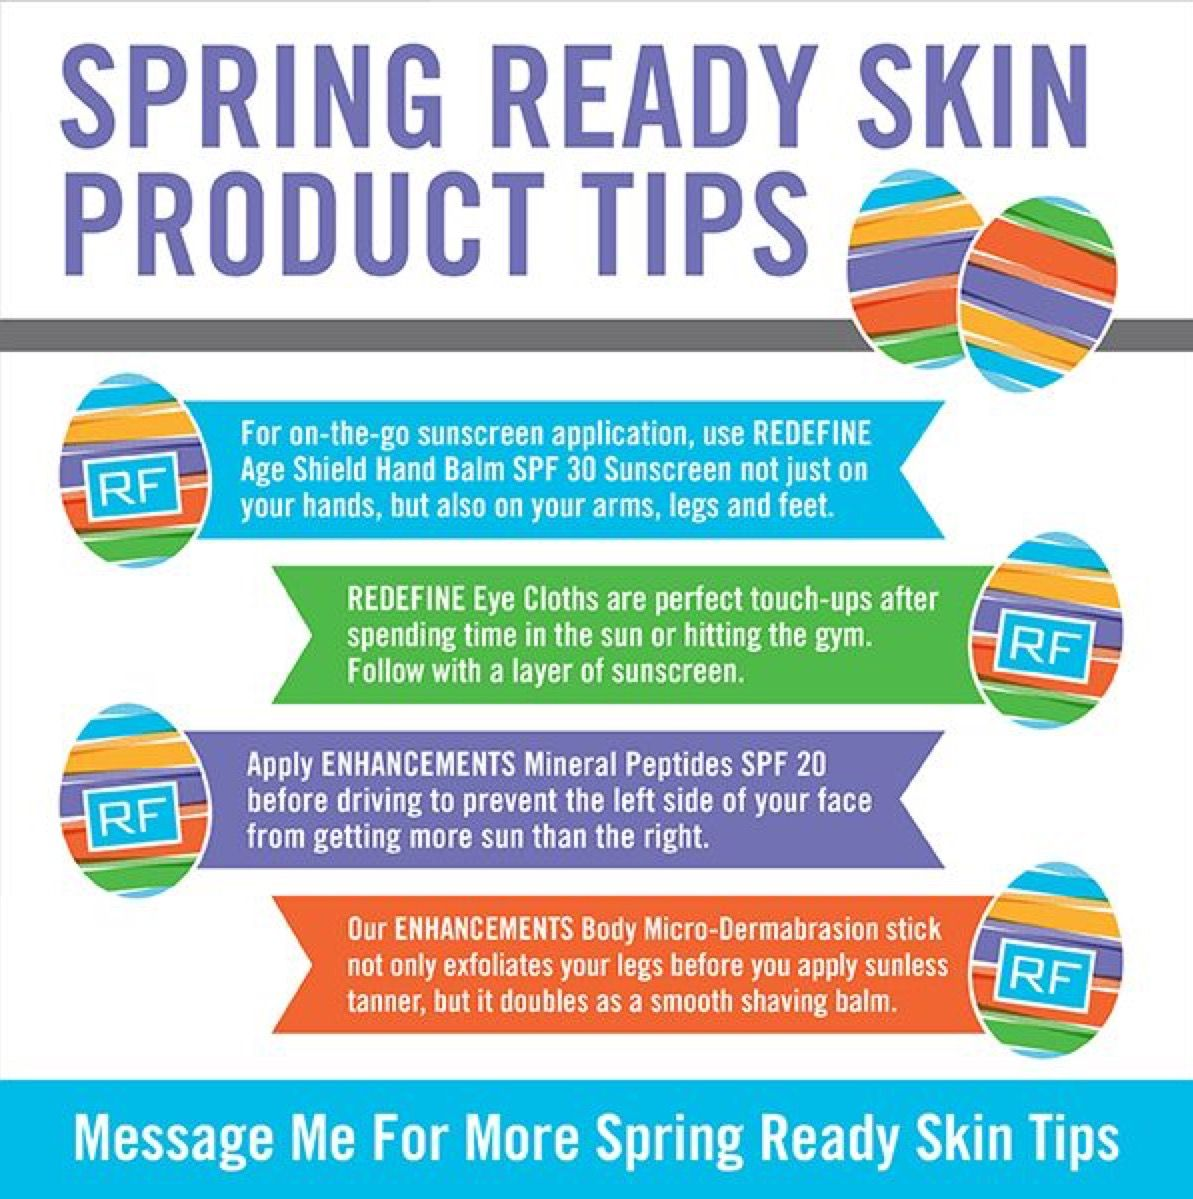 Got Skin? Message me for more details on Spring and Summer Skincare Products.